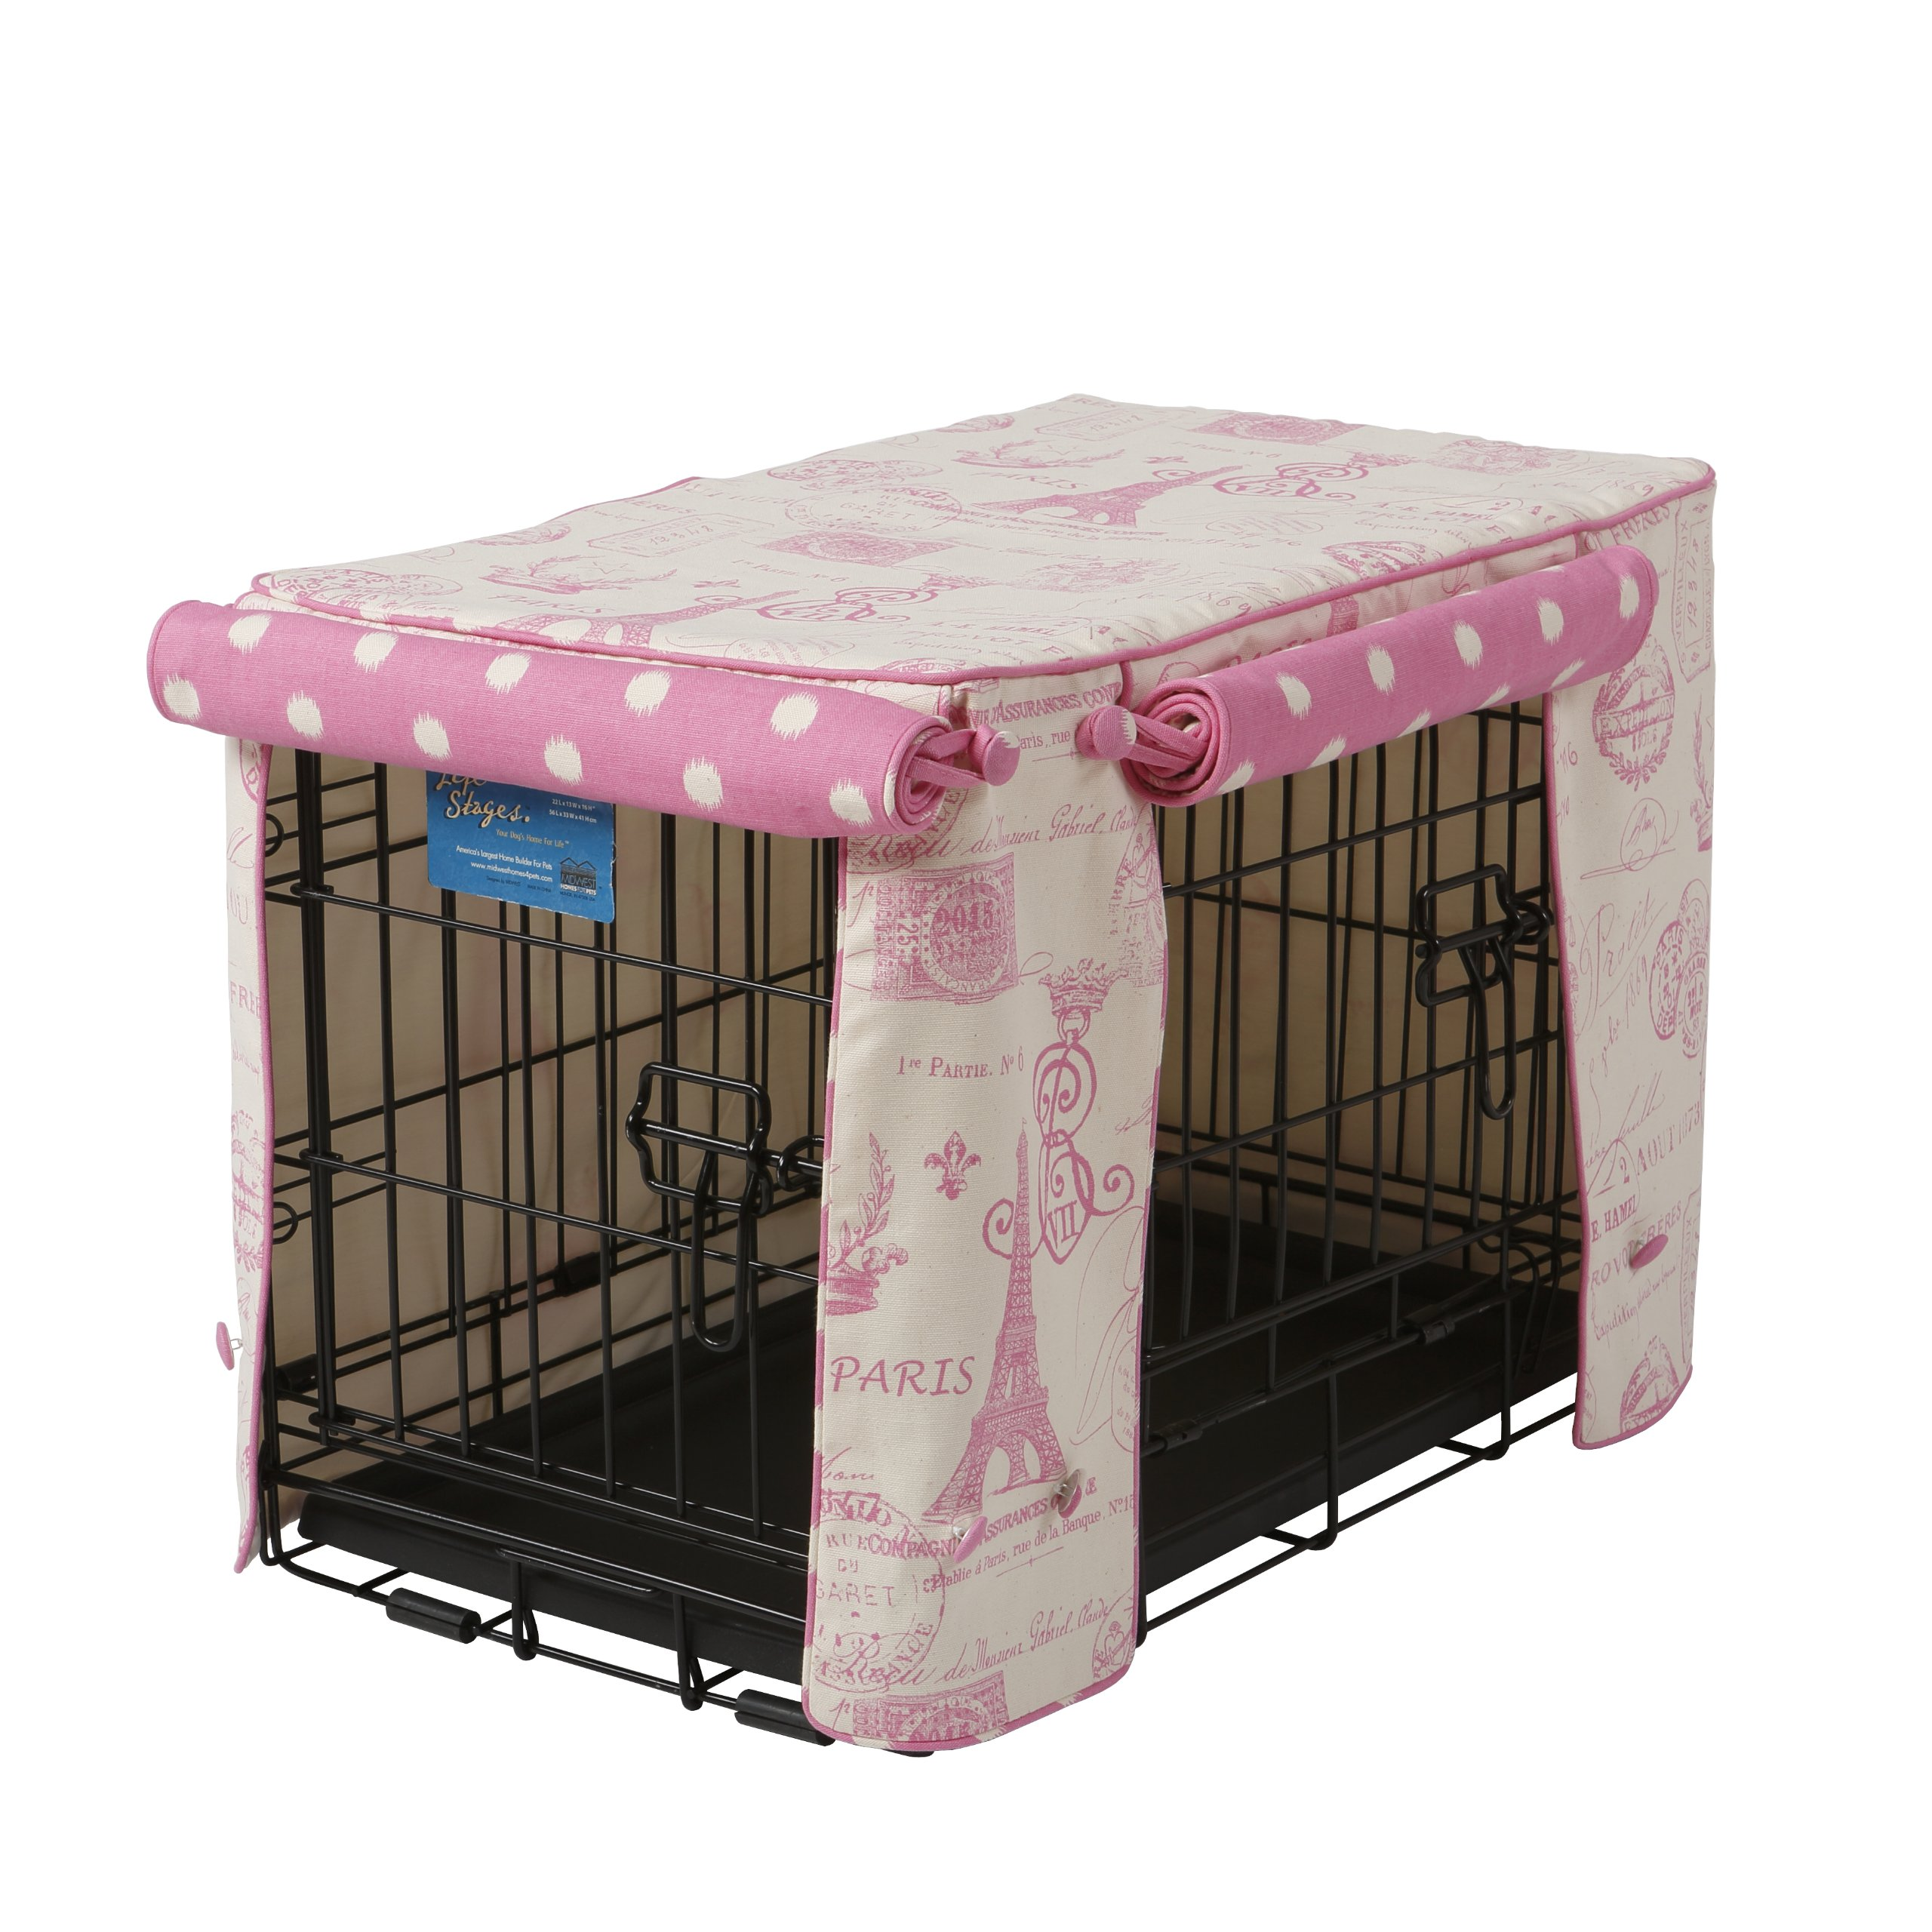 Crate Covers and More Double Door 42 Pet Crate Cover, Parisian Pink with Pink Polka Dot